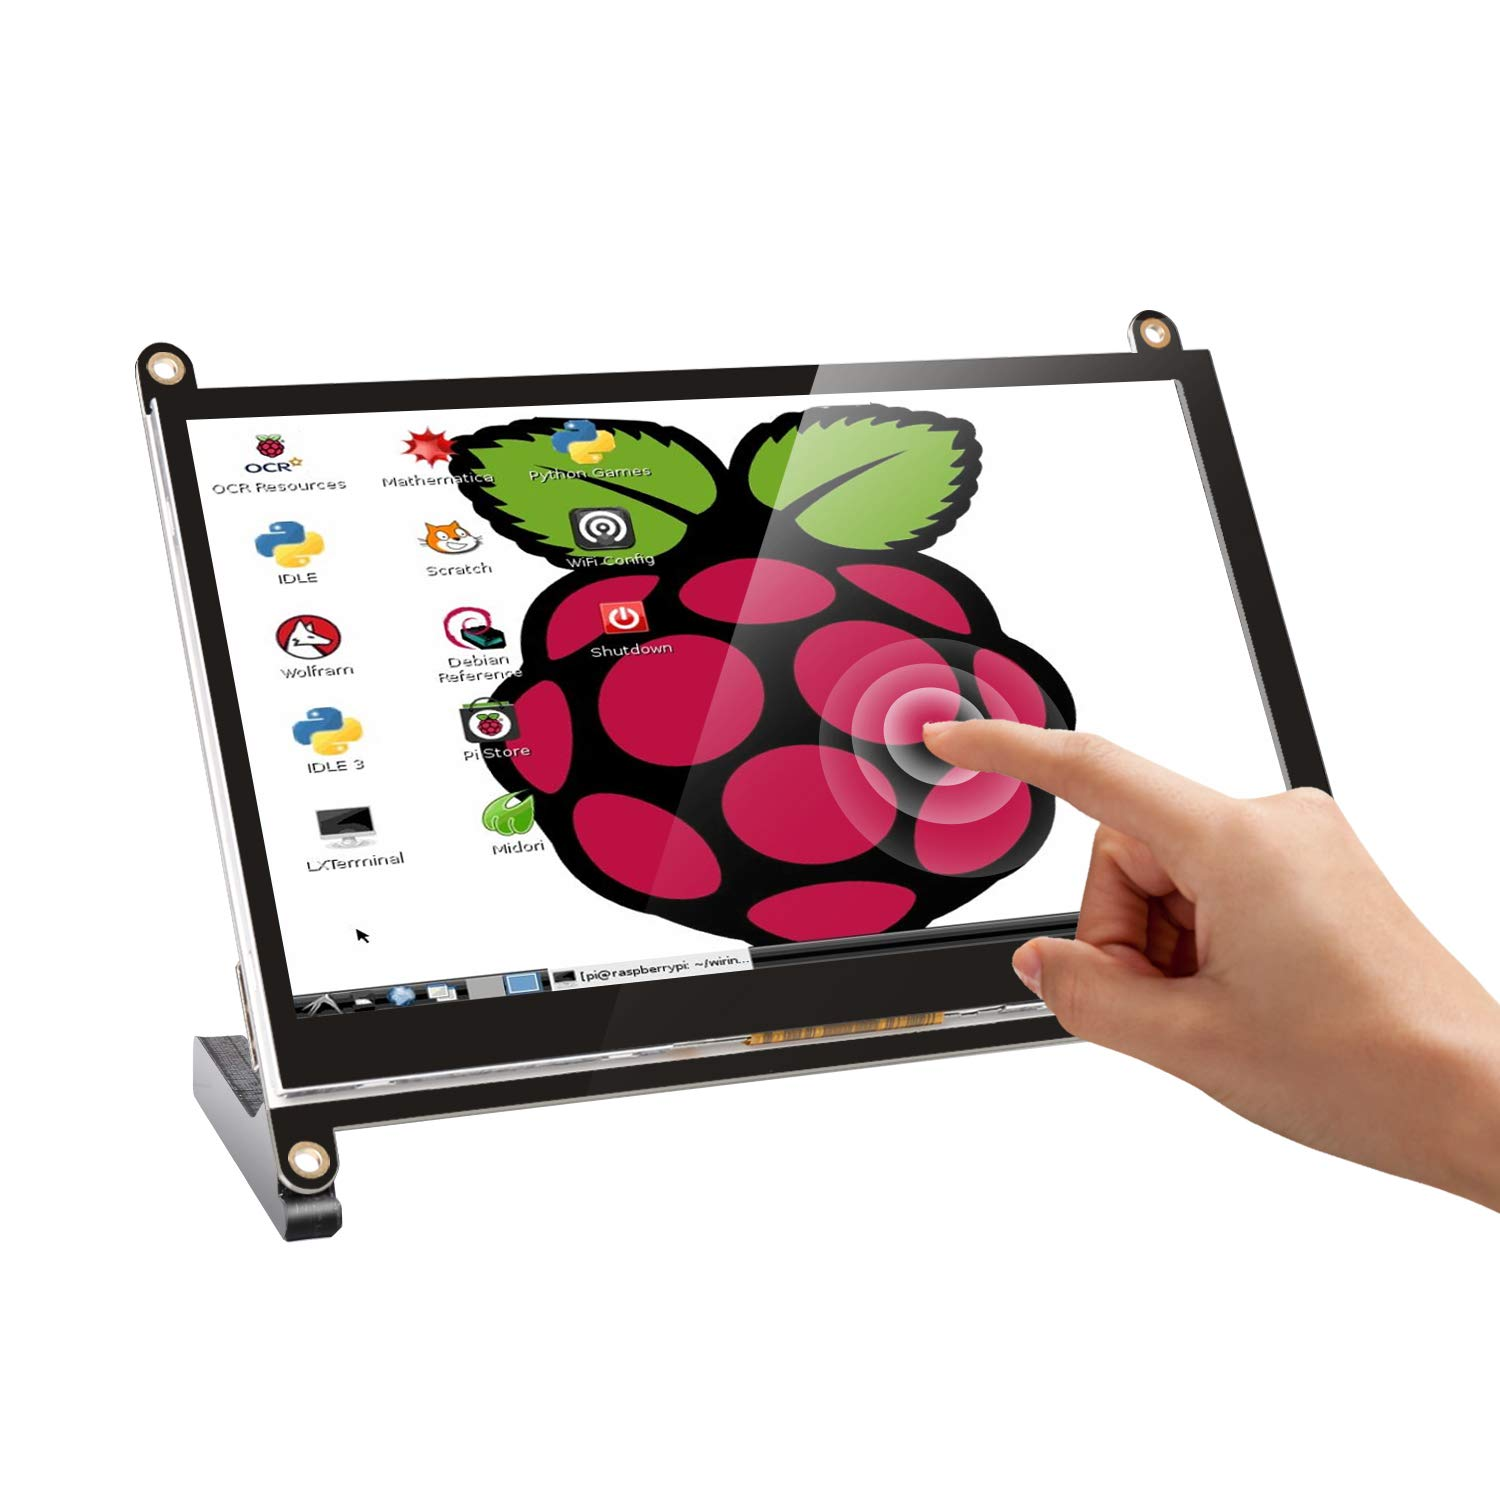 7 Inch Touch Screen Monitor, Portable IPS Display 1024 * 600 16:9 USB HDMI Monitor